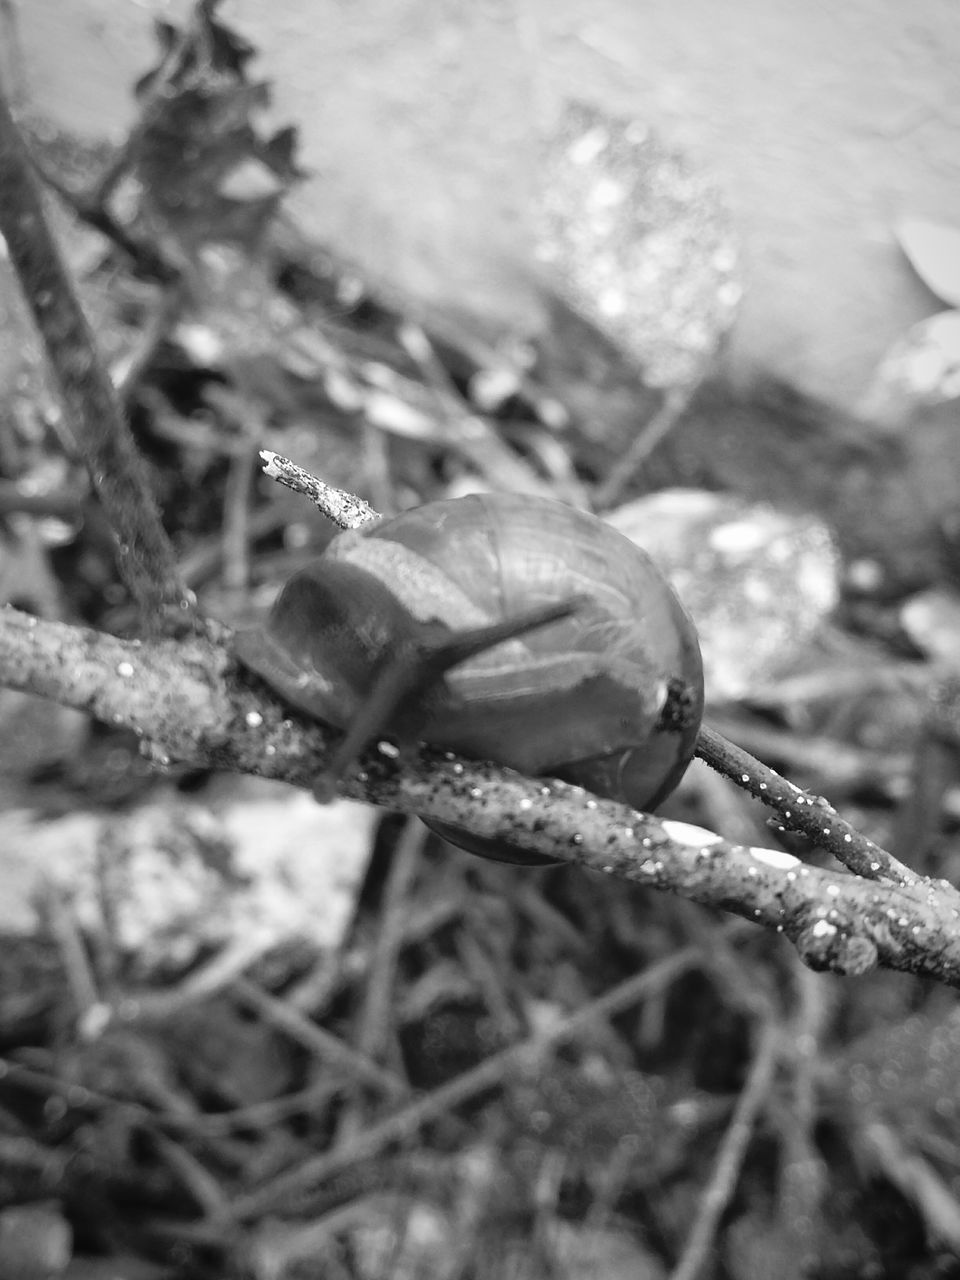 one animal, animal themes, snail, close-up, wildlife, gastropod, nature, no people, animals in the wild, outdoors, day, slug, fragility